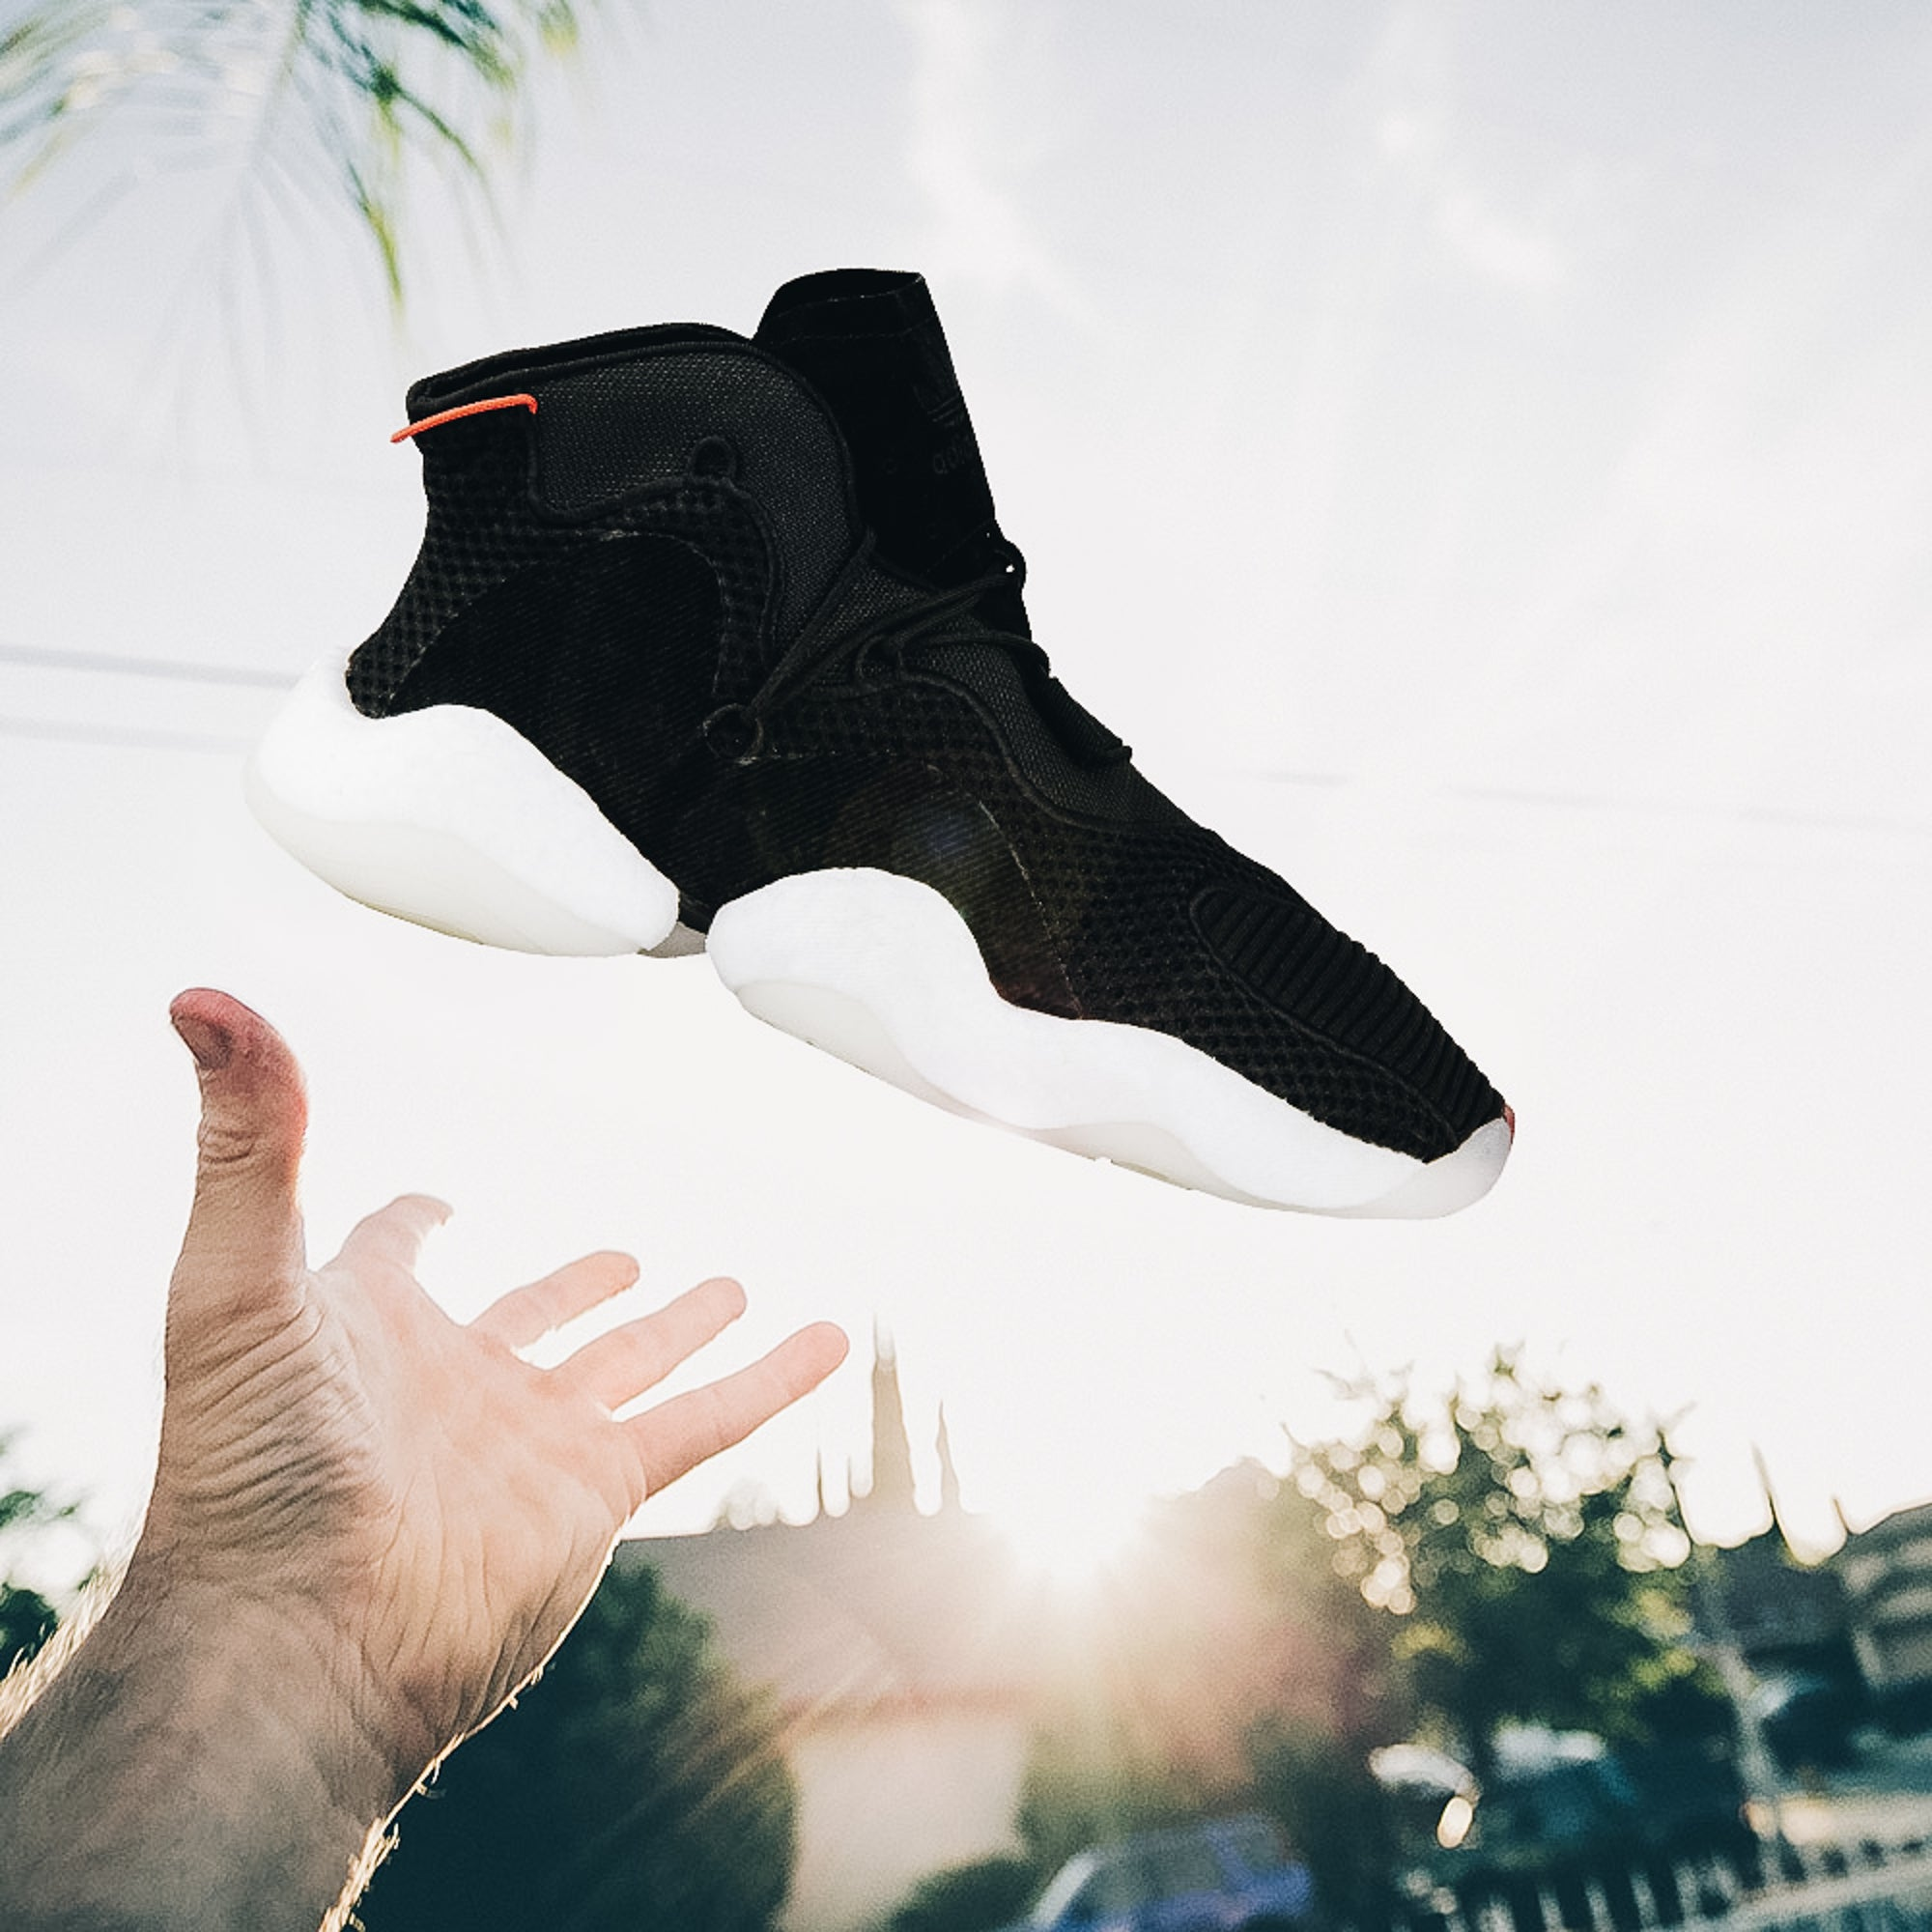 buy online 5538d 3c90e ... Adidas Crazy BYW B37480 Mens Sneaker in Black and White - Adidas - On  The EDGE